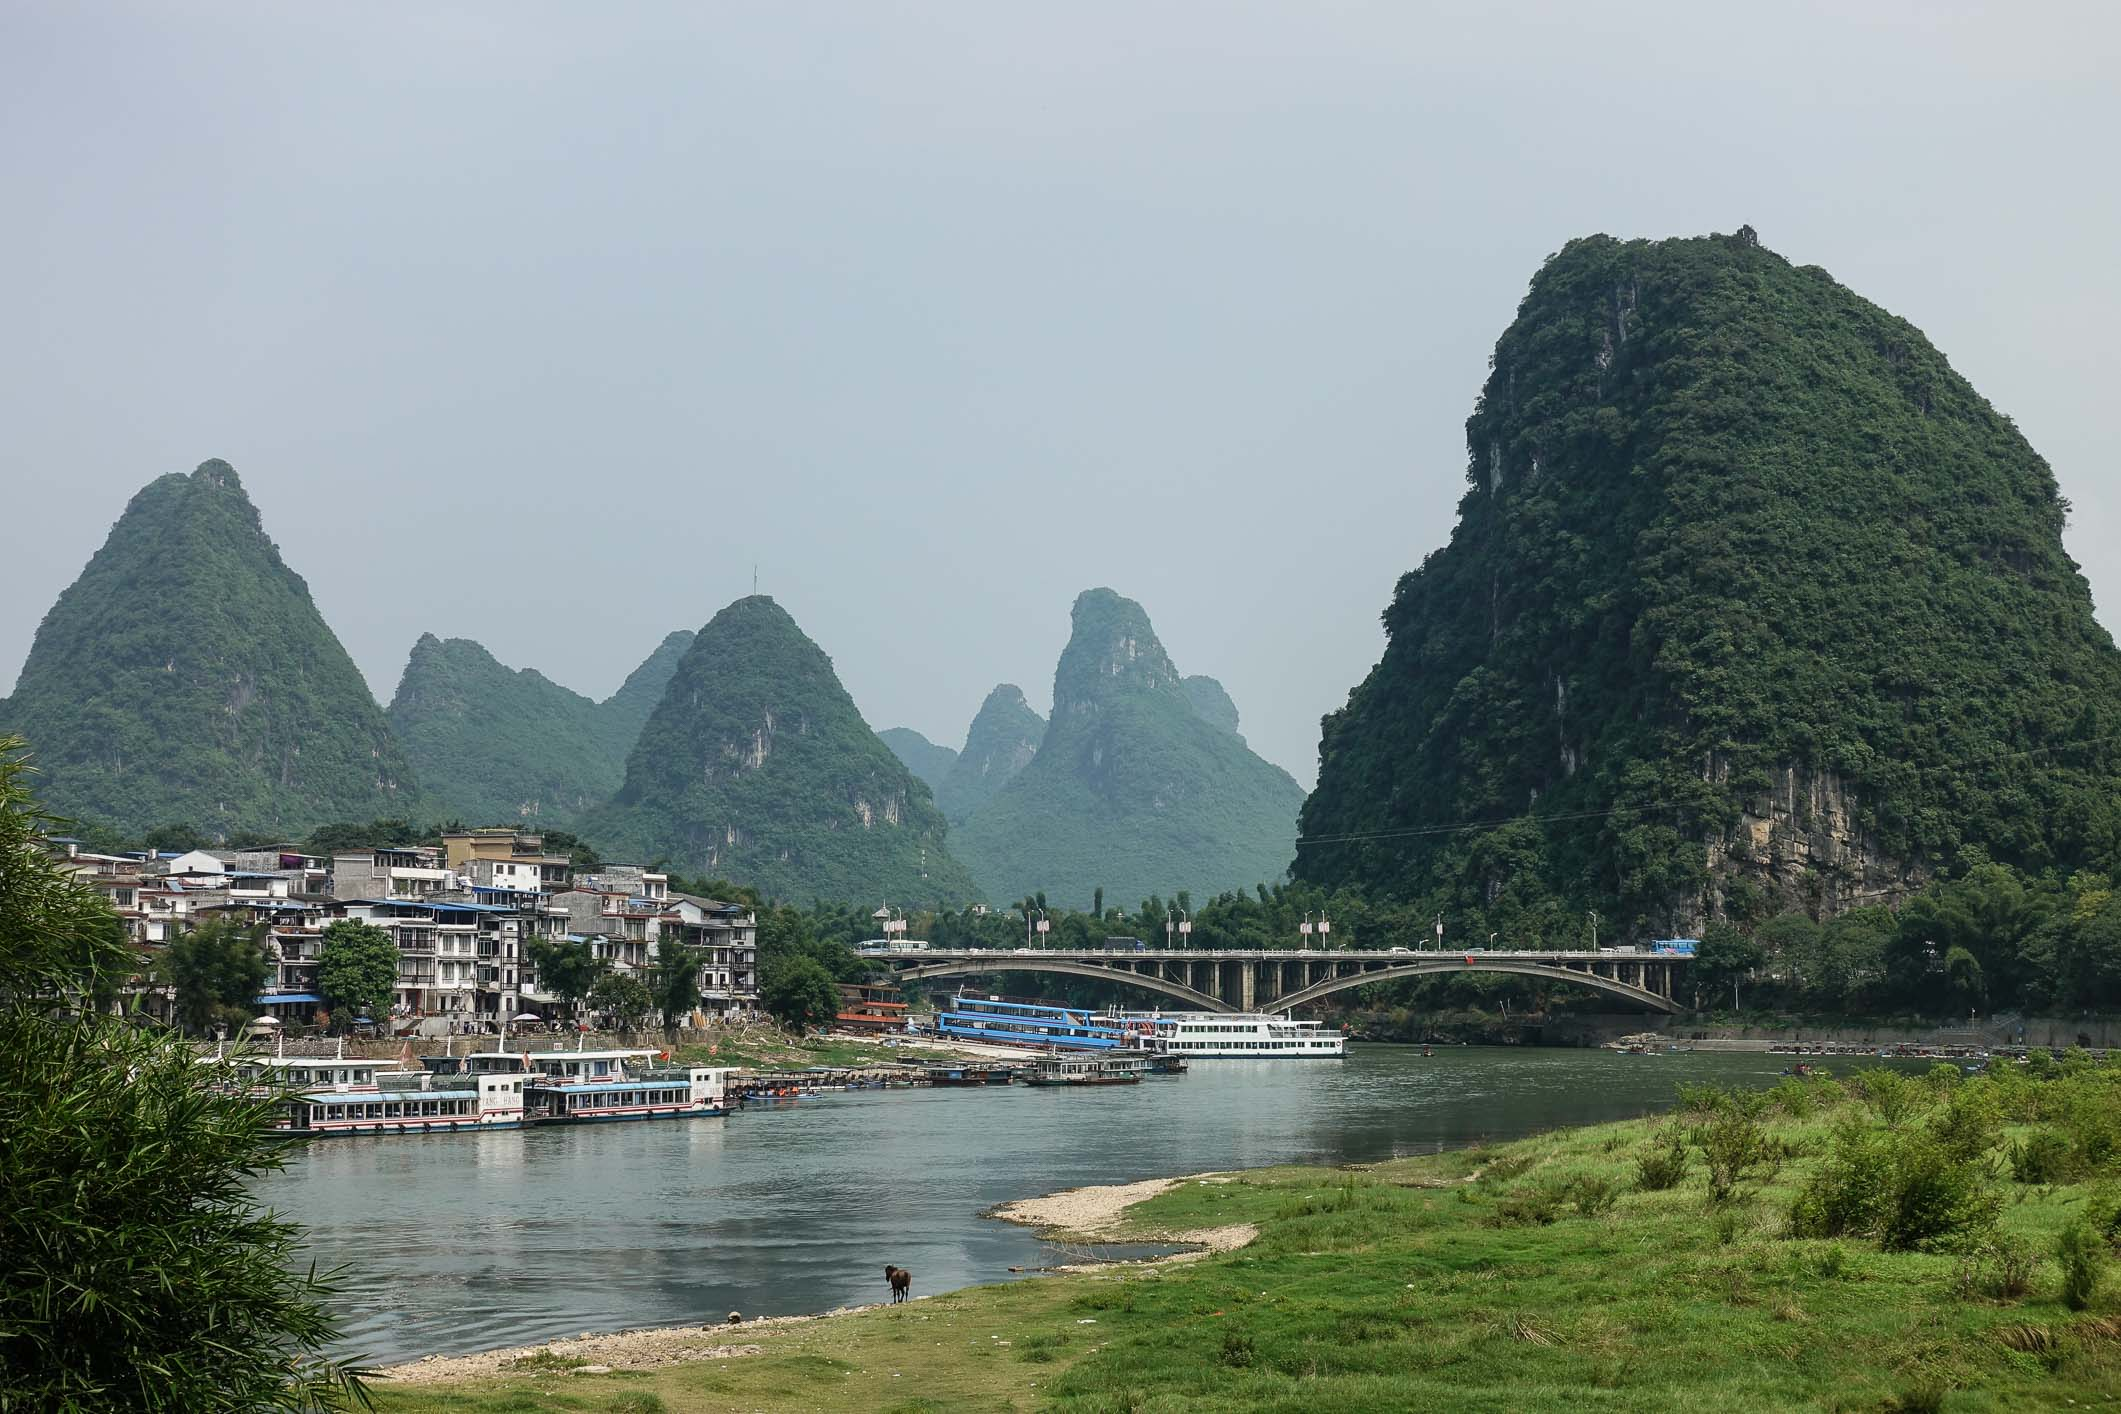 Views around Yangshuo